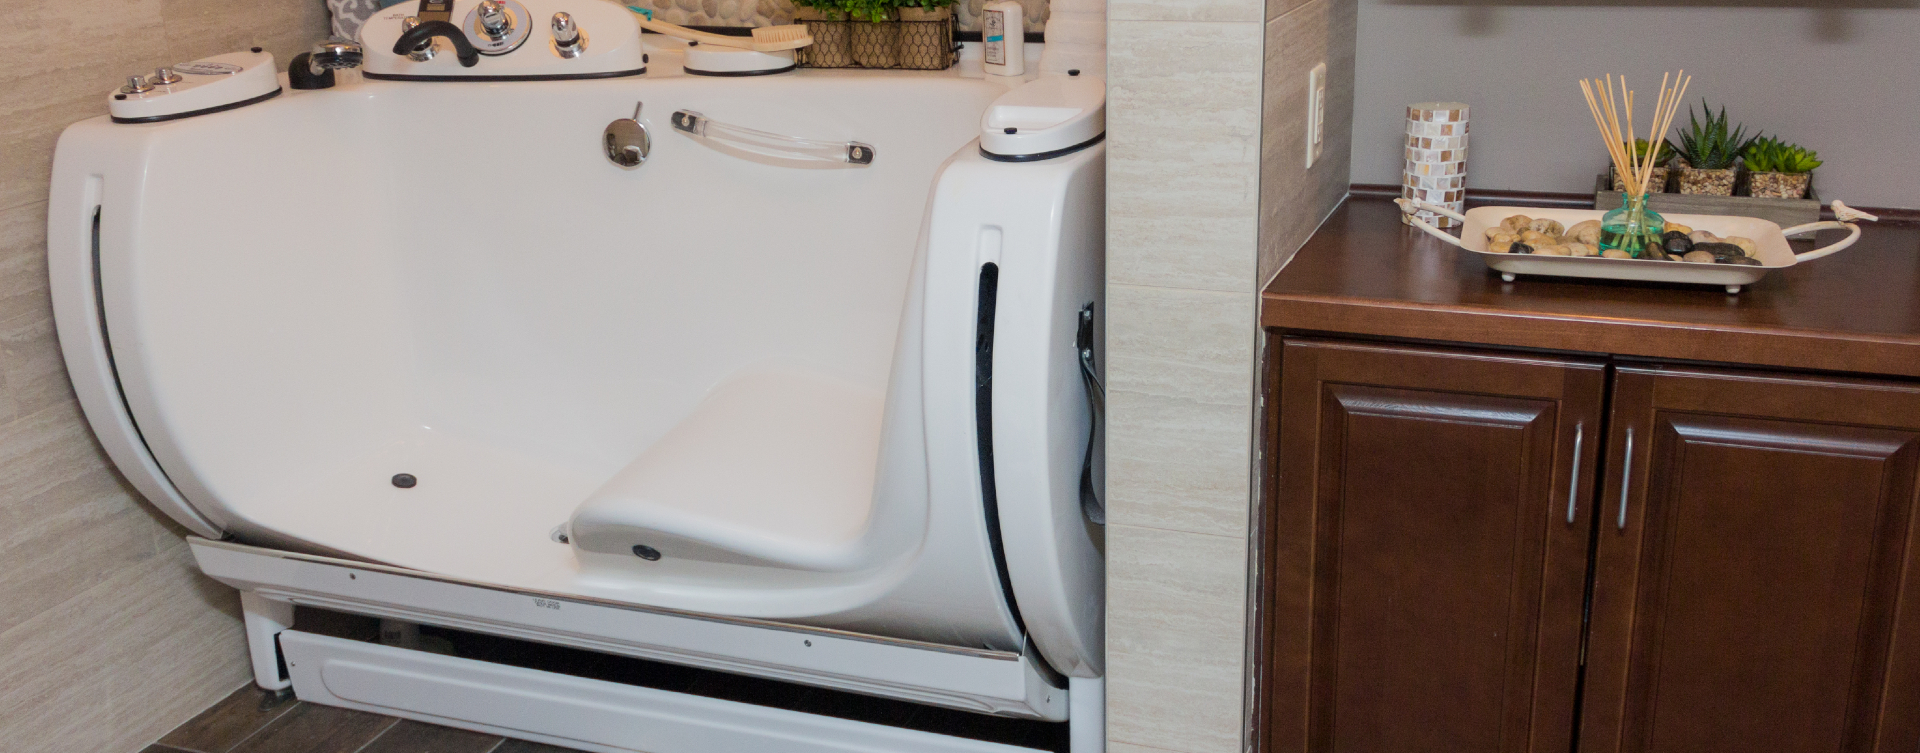 With an easy access design, our whirlpool allows you to enjoy a warm bath safely and comfortably at Bickford of Suffolk